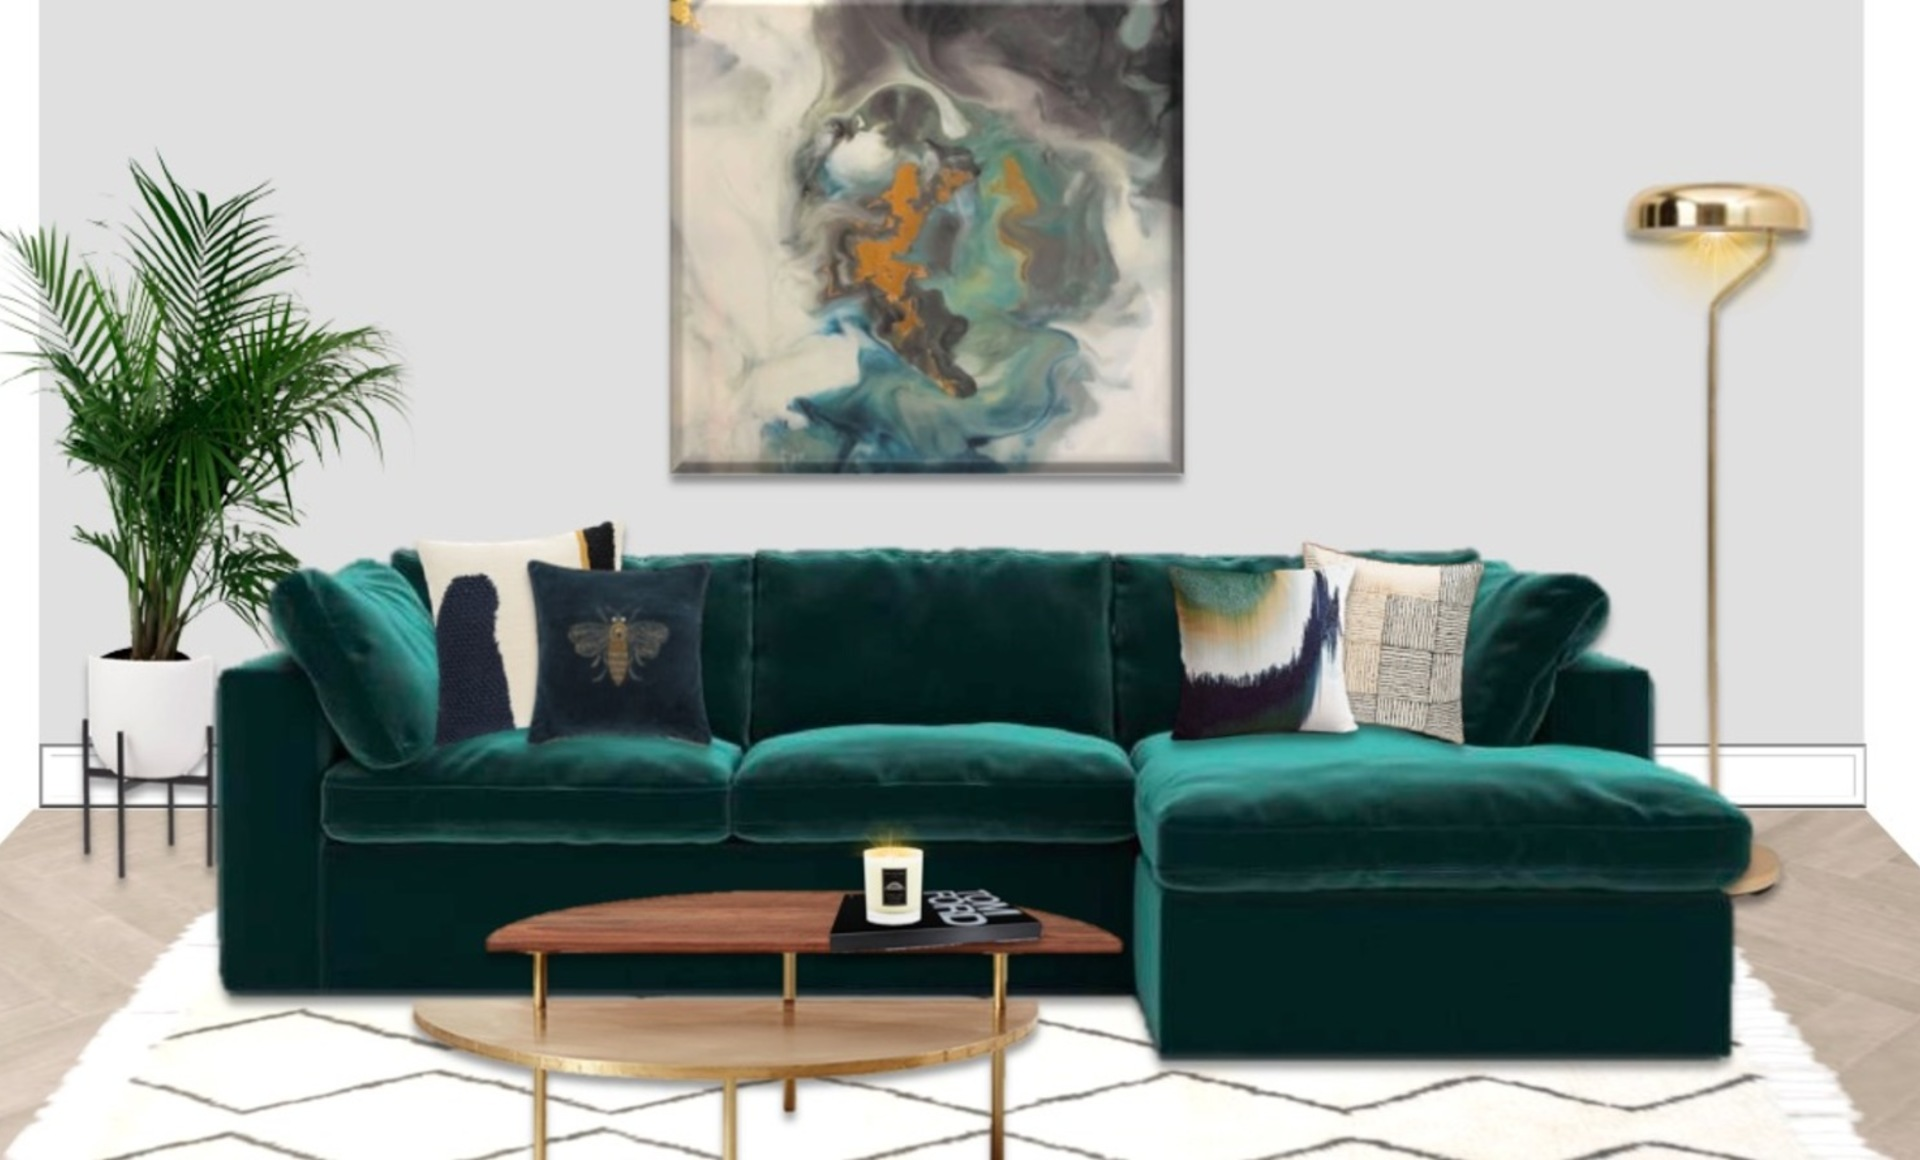 Deep teal velvet sofa adds luxury and comfort and large abstract artwork makes a statement